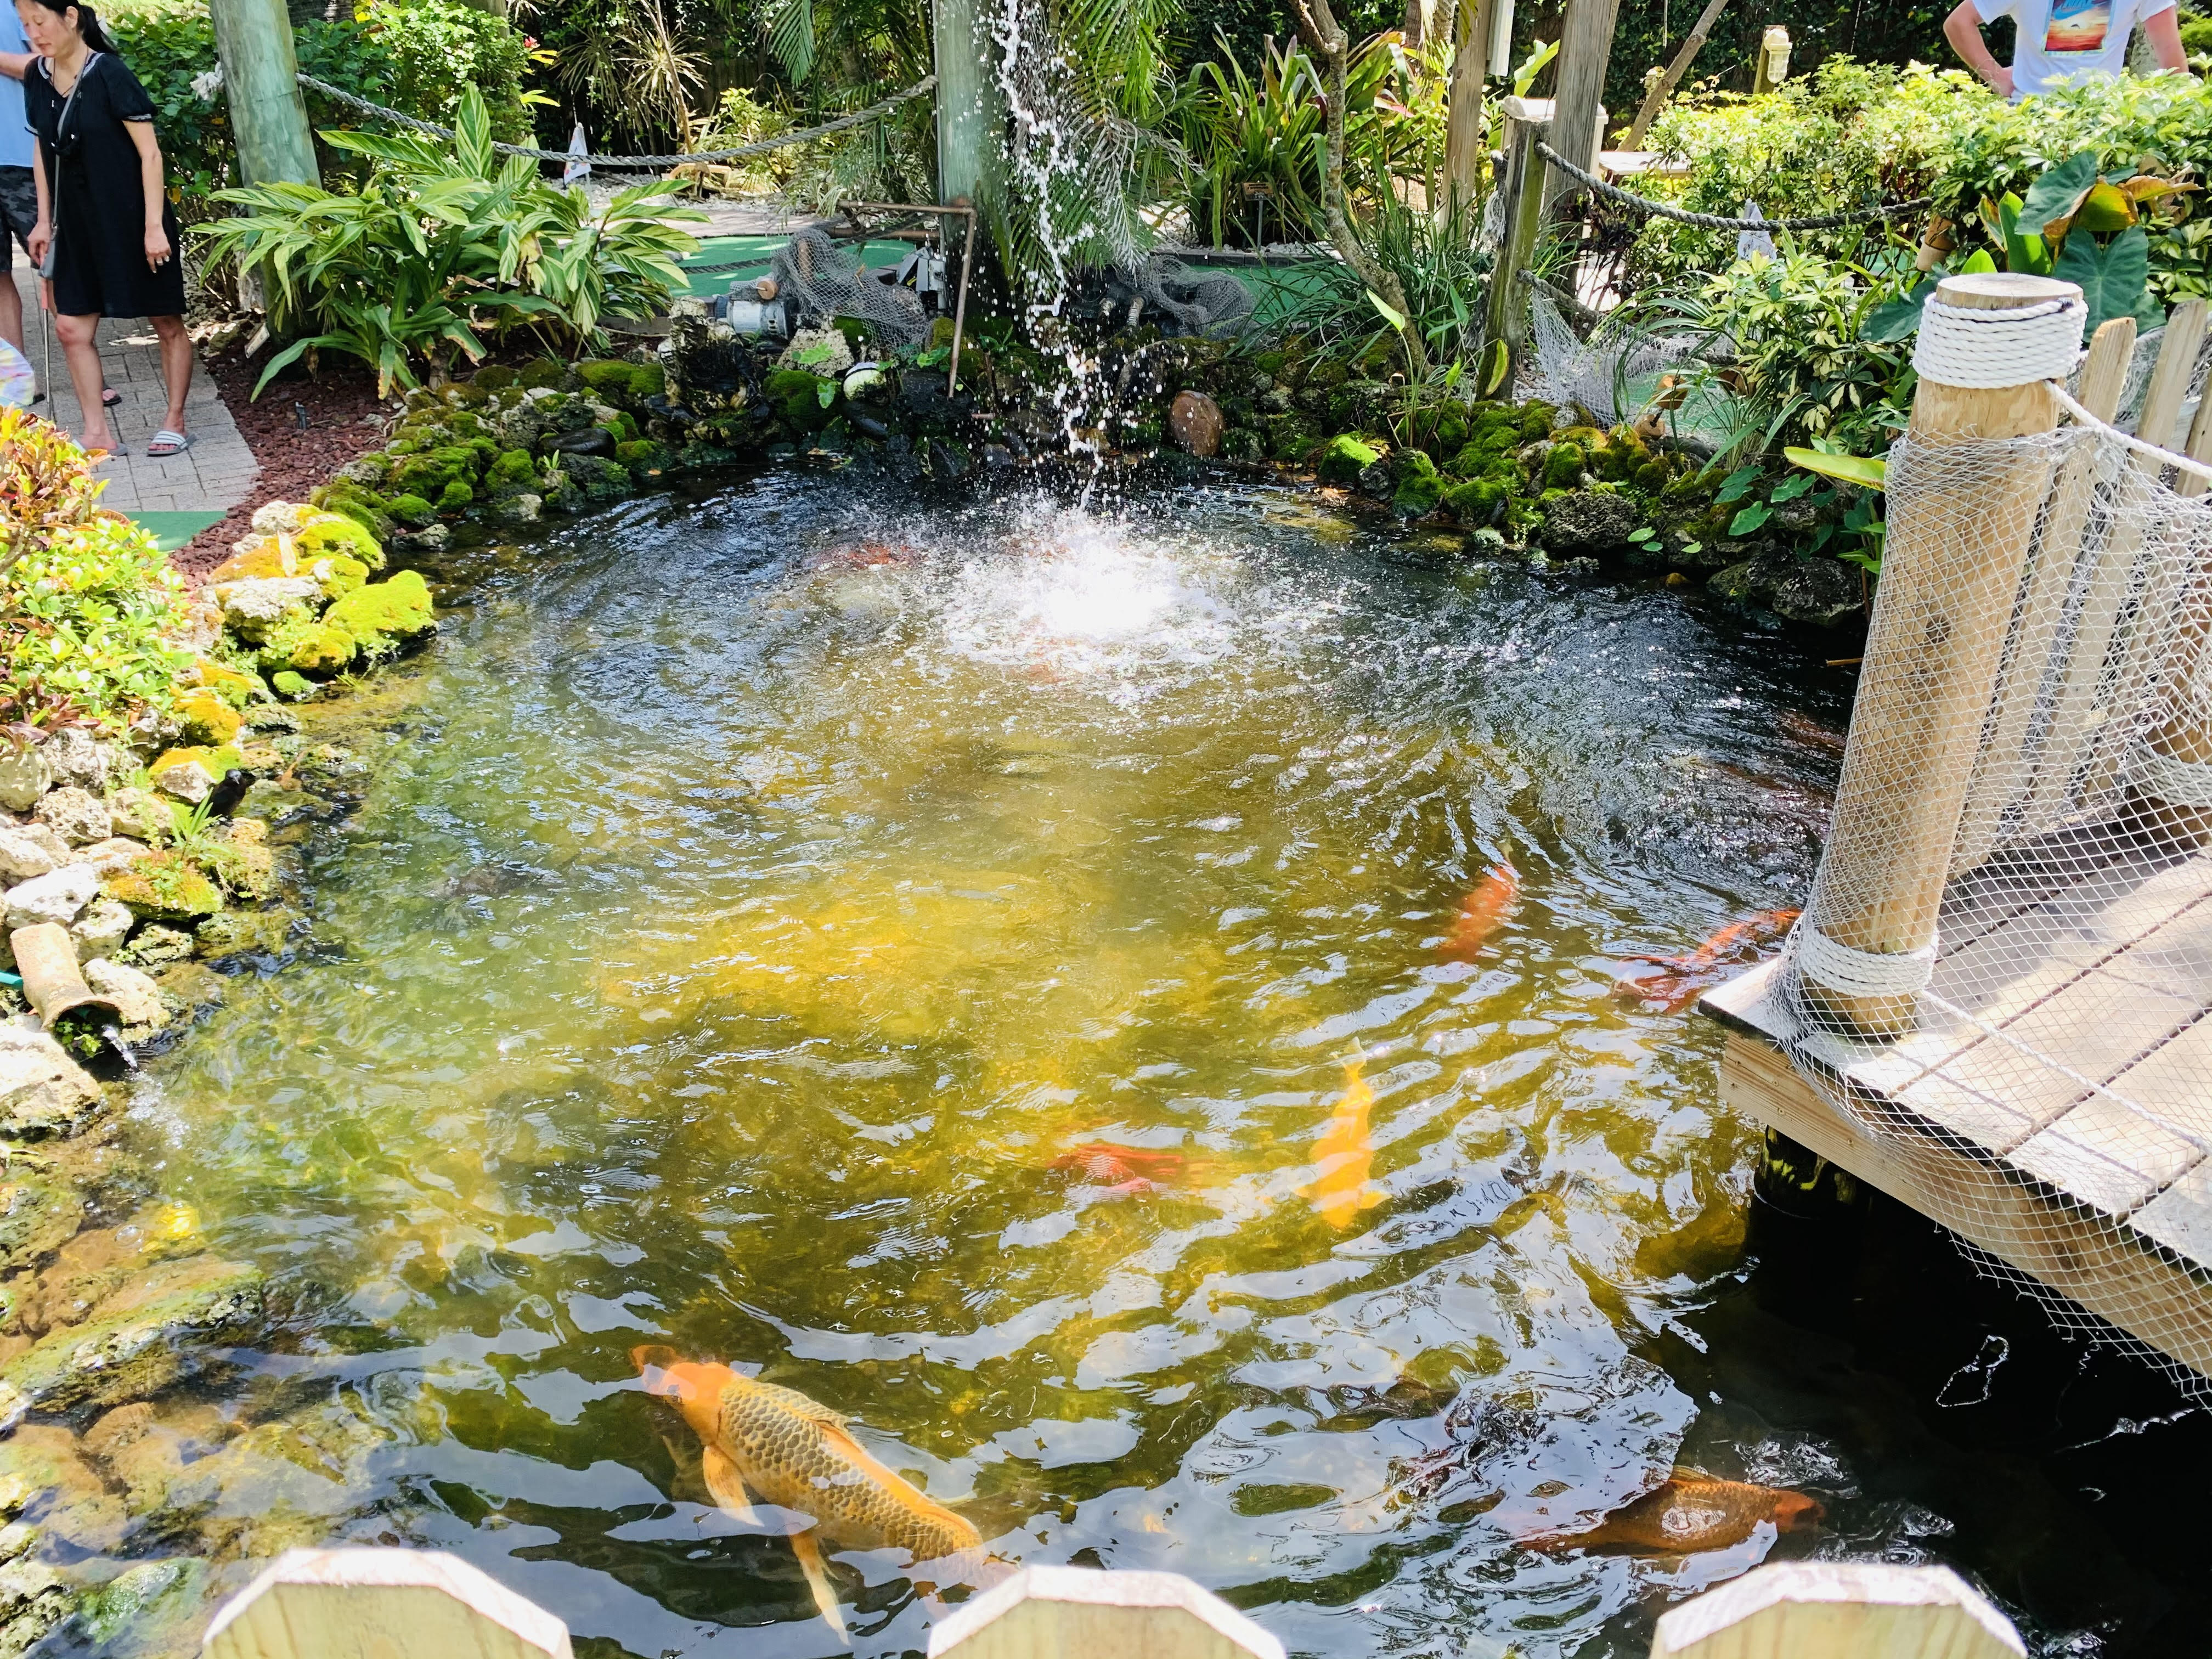 The Fish Hole Koi pond; Discover the best things to do on Anna Maria Island from Top US Family Travel Blog, Travel With A Plan!